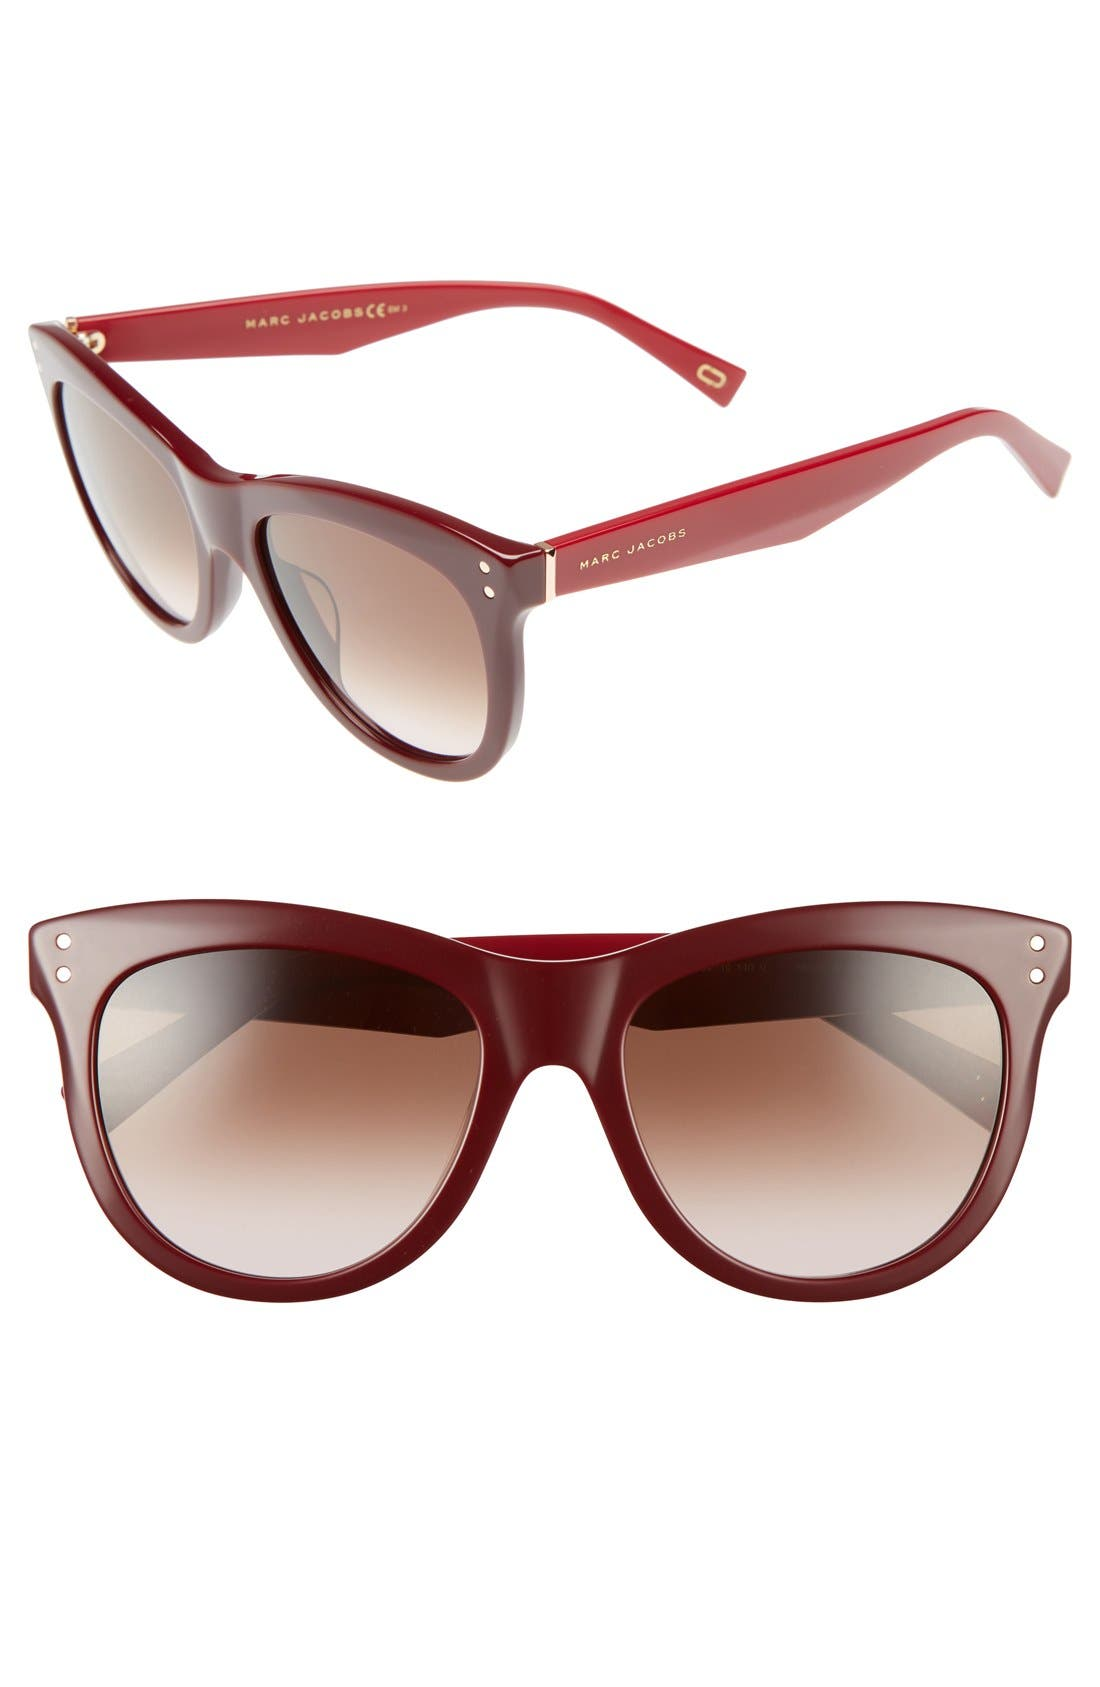 54mm Sunglasses,                         Main,                         color, Burgundy